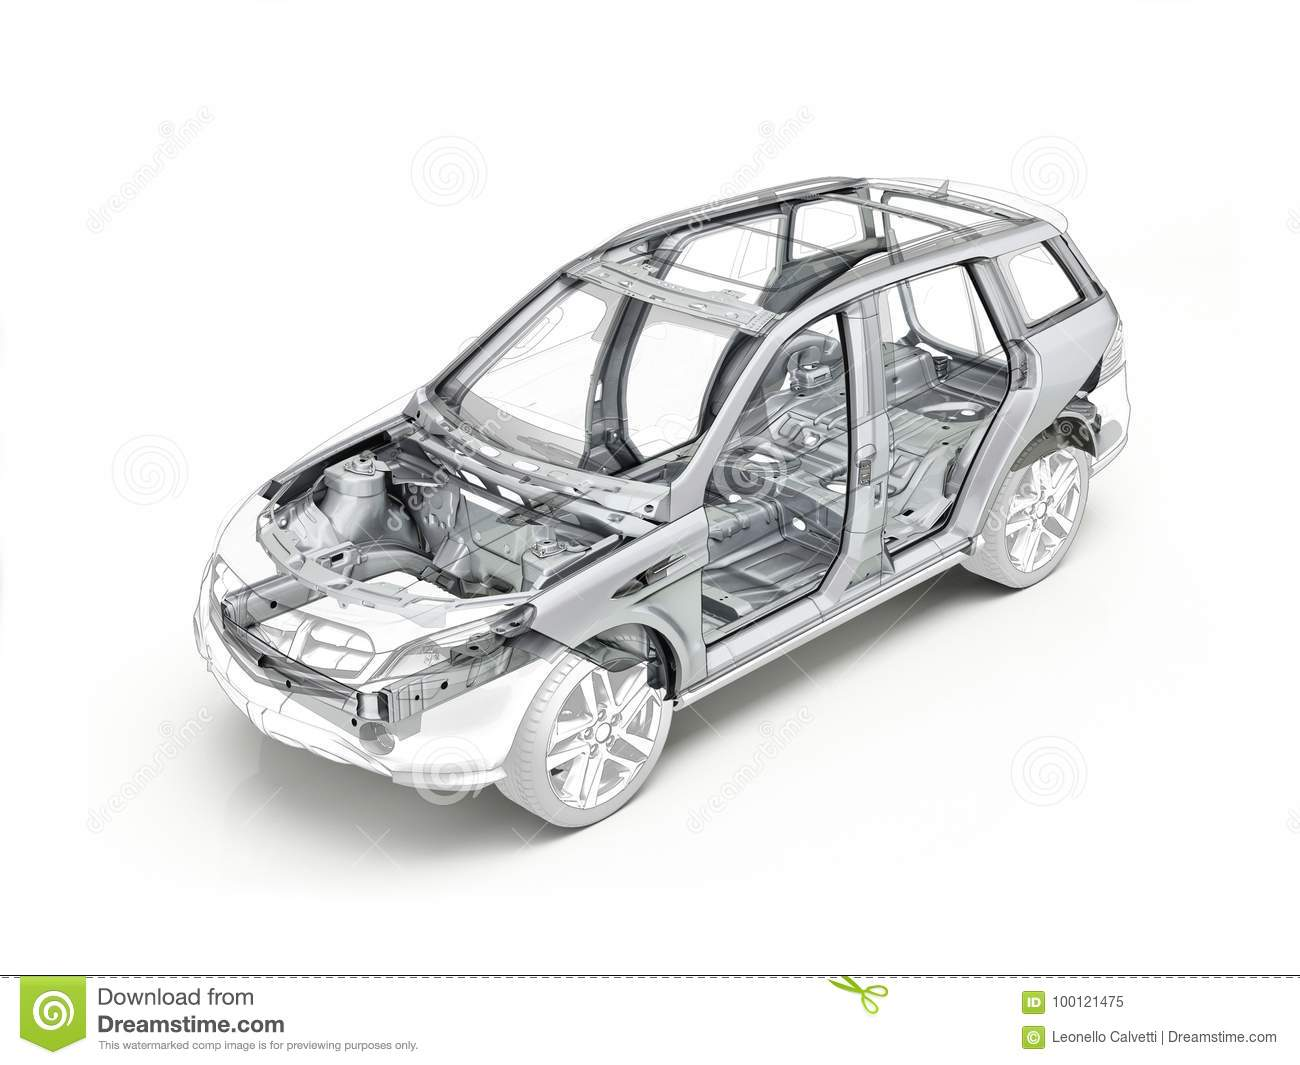 Suv Technical Drawing Showing The Car Chassis. Stock Illustration ...